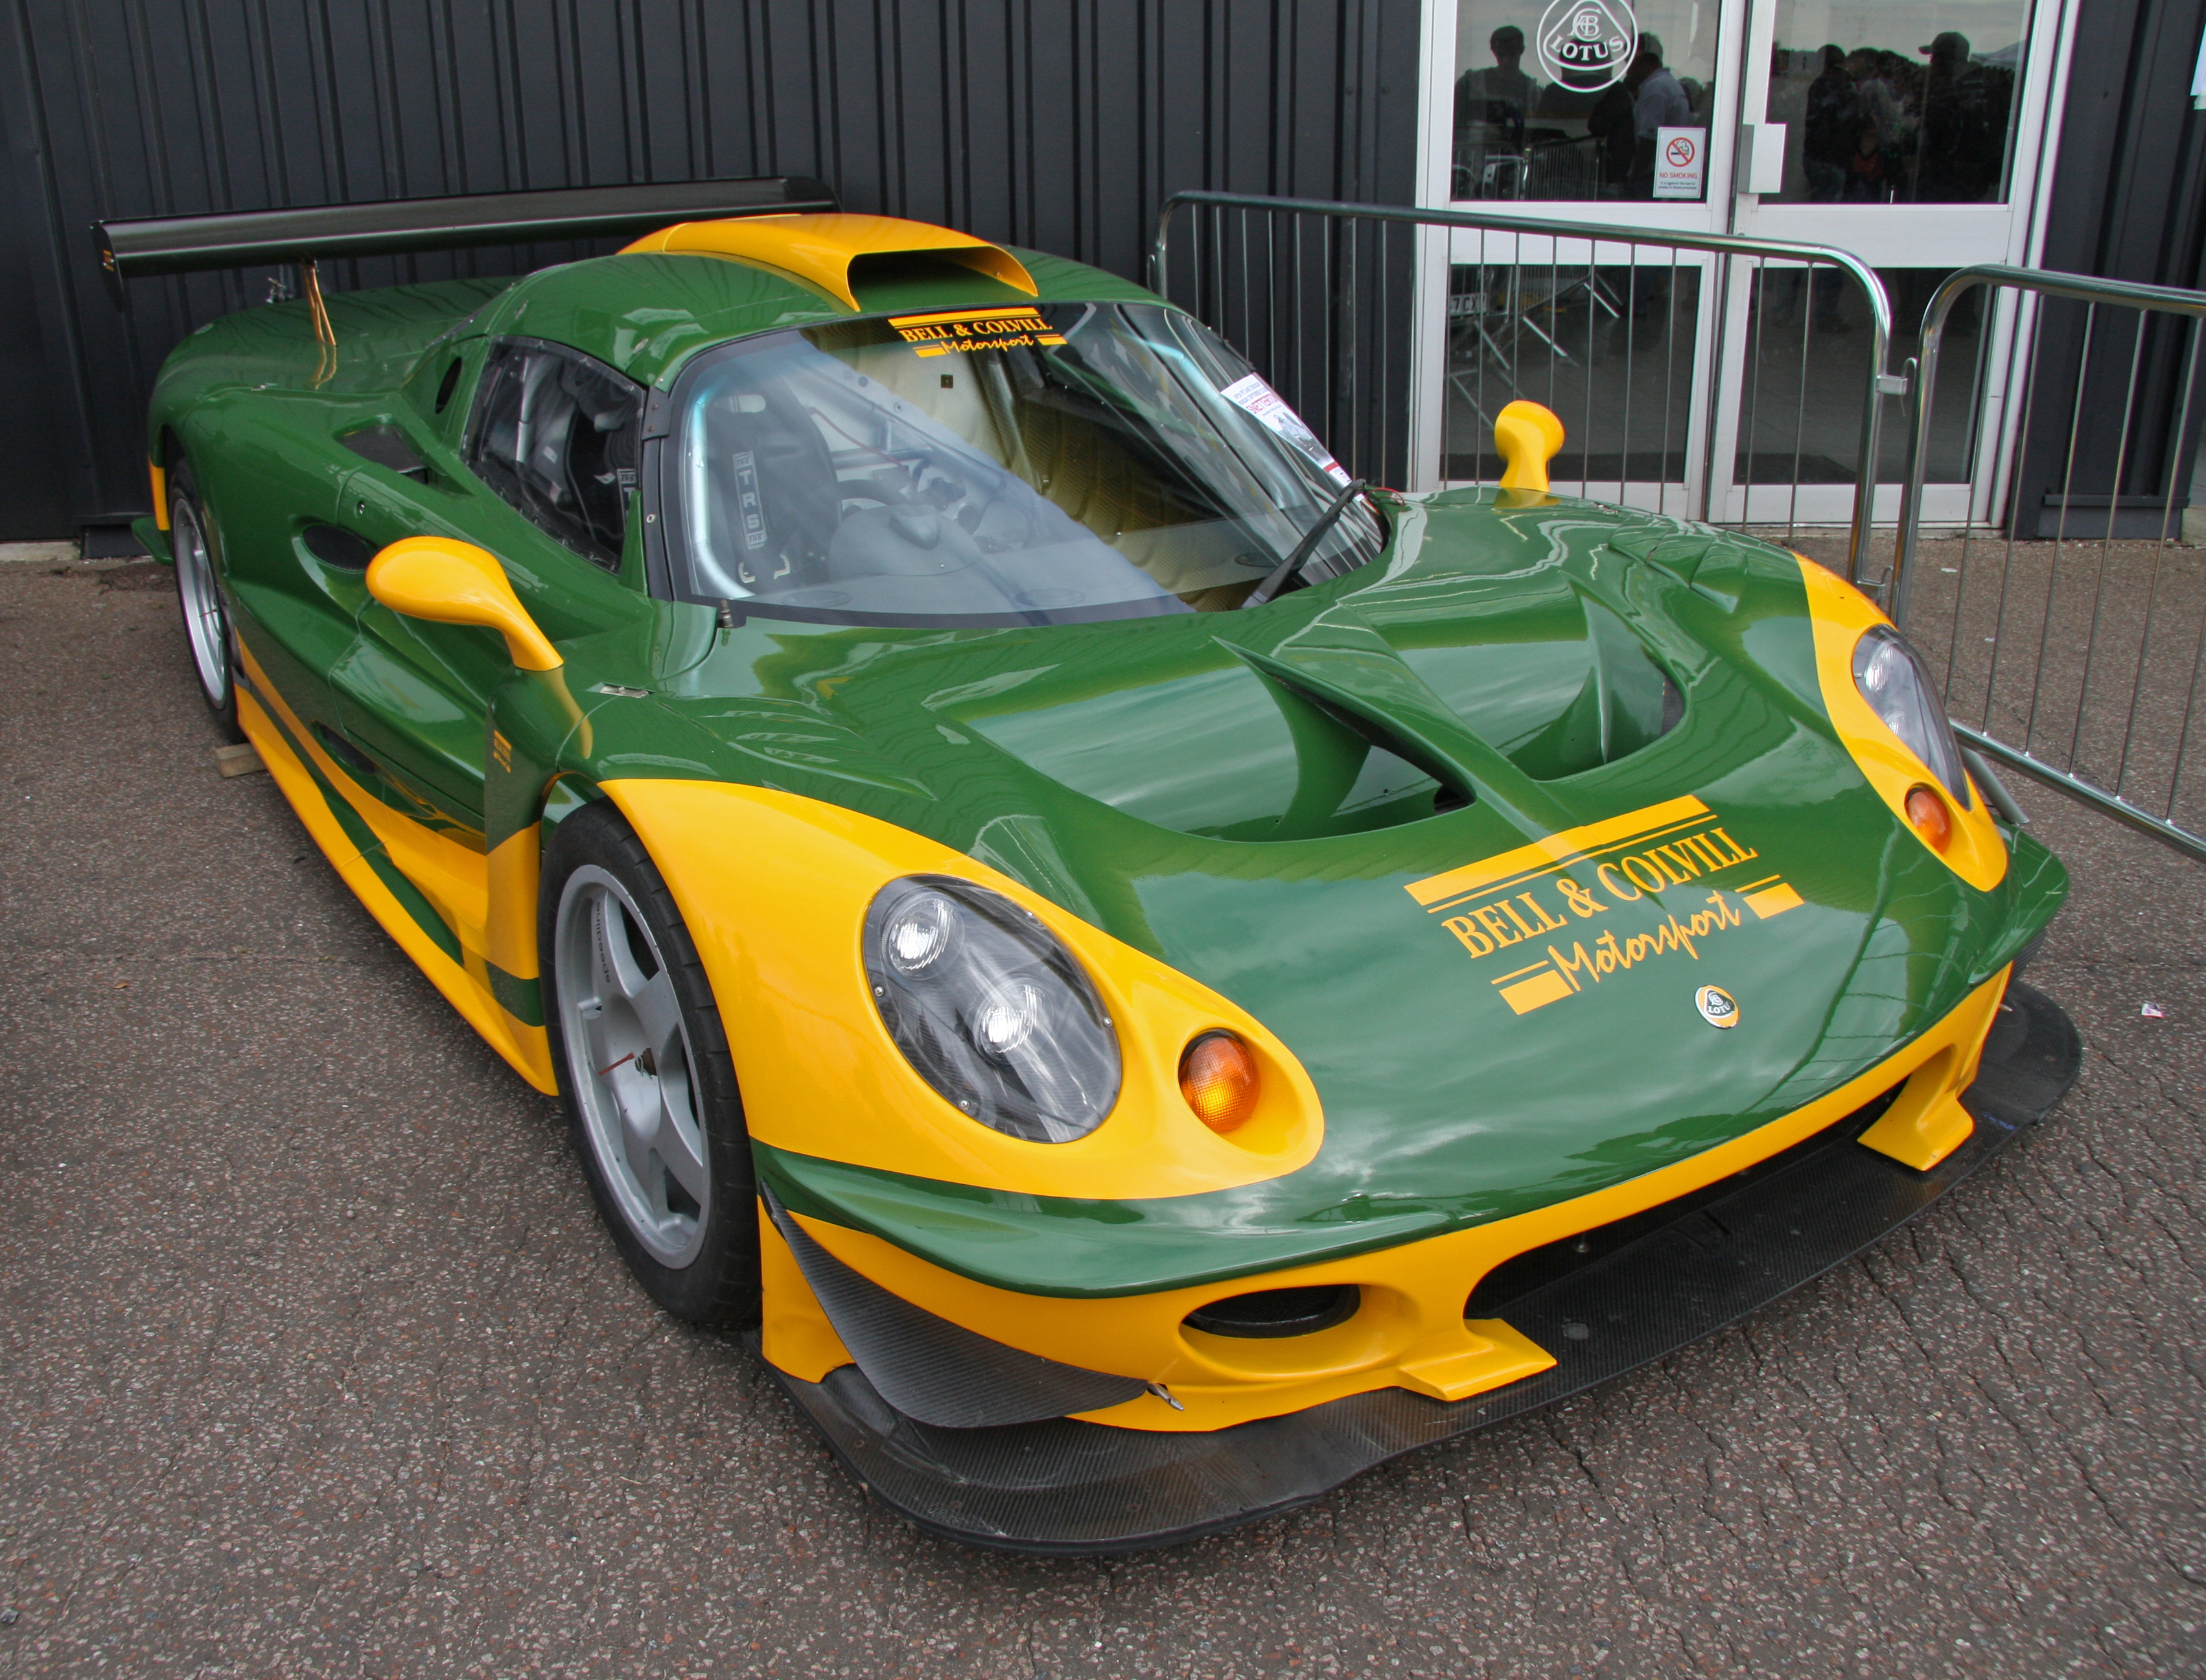 File:Lotus Elise GT1.jpg - Wikimedia Commons